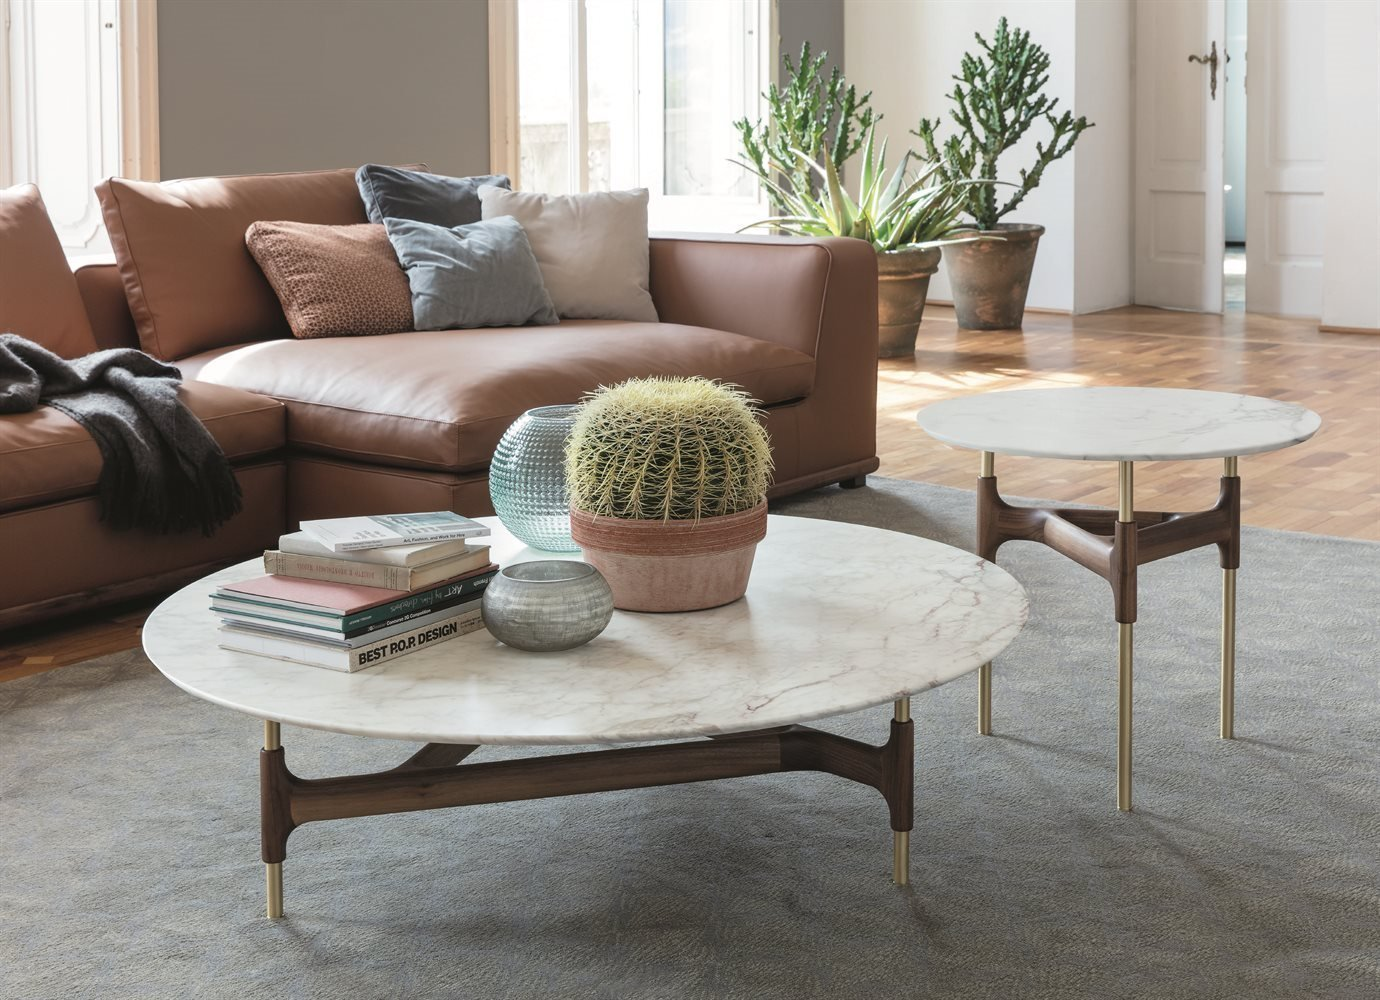 Porada - Coffee table